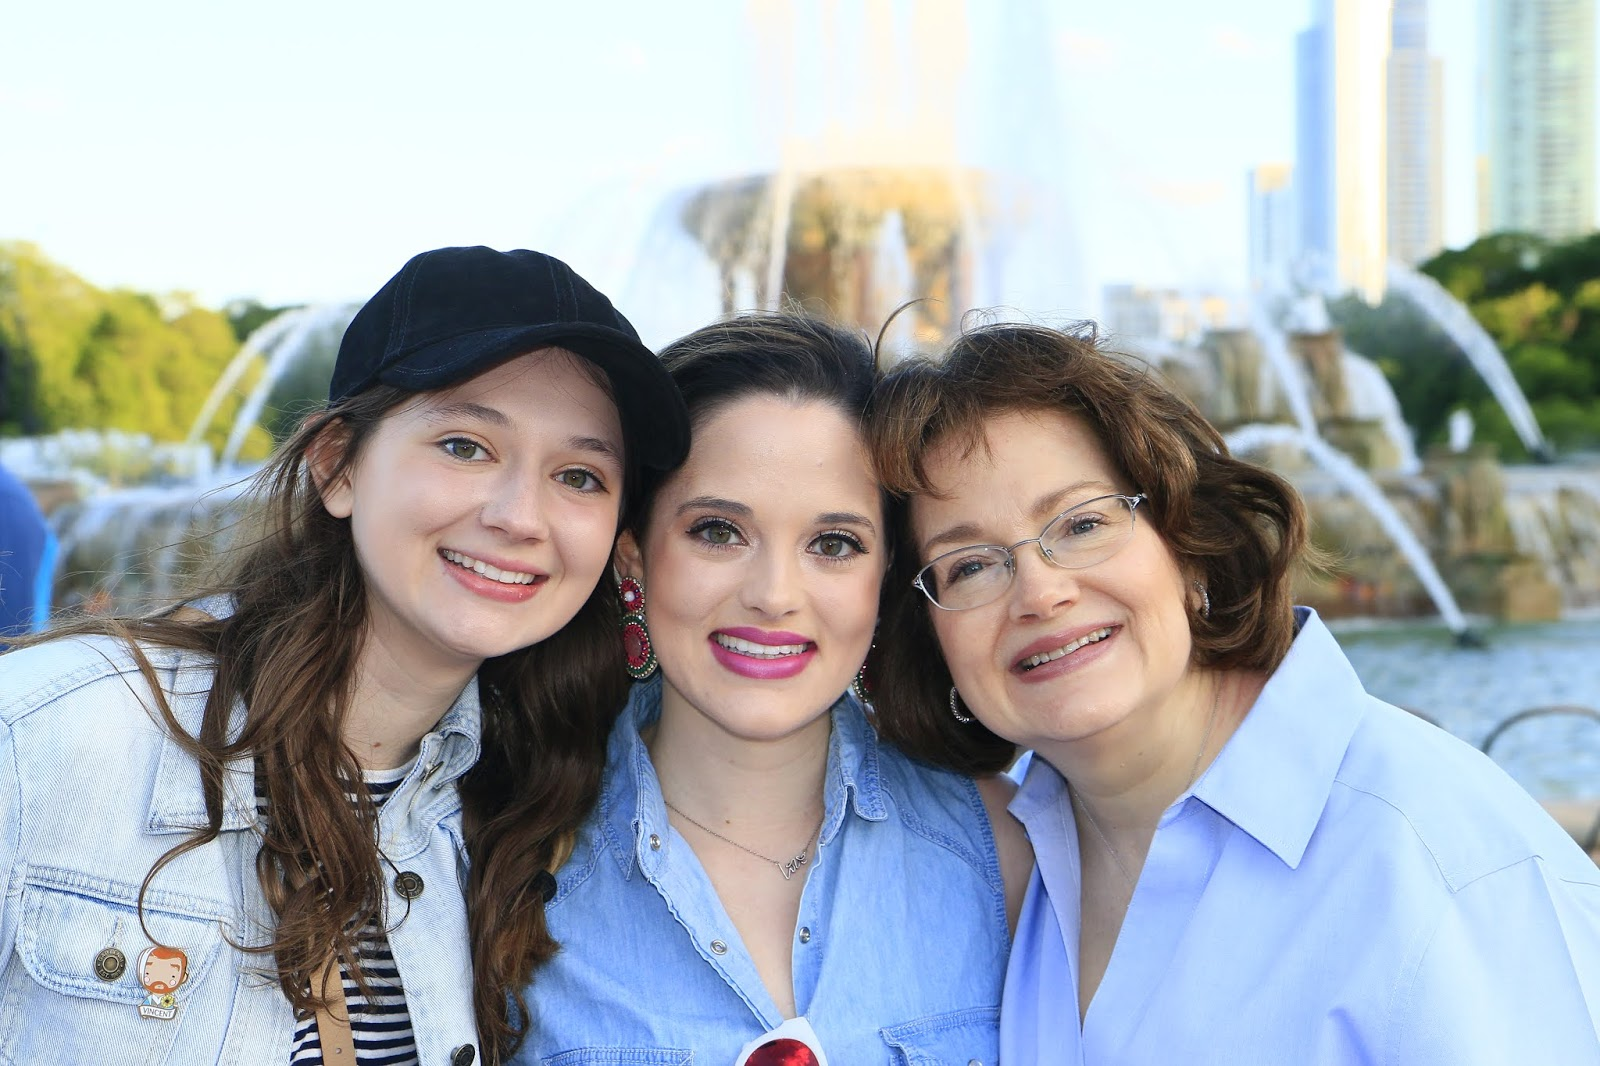 Nyc fashion blogger Kathleen Harper with her mom and sister in Chicago